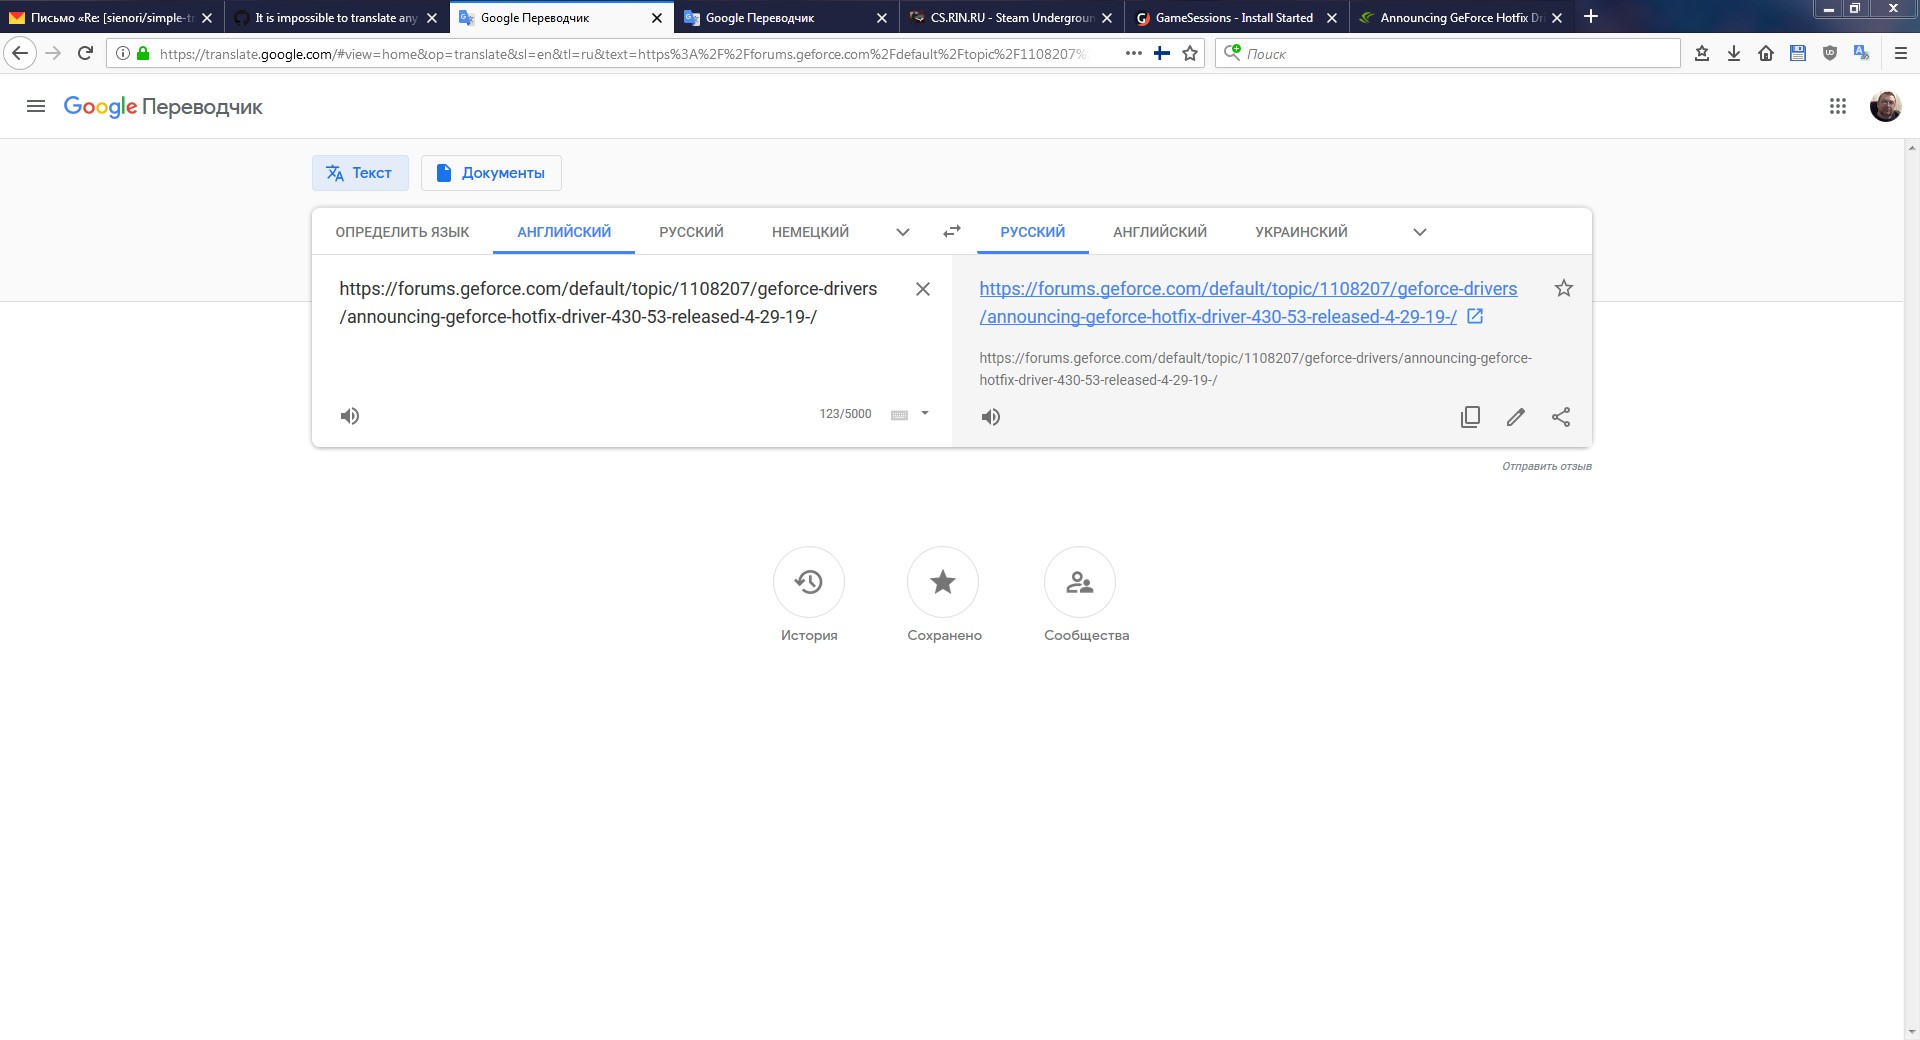 It is impossible to translate any pages on the https://forums